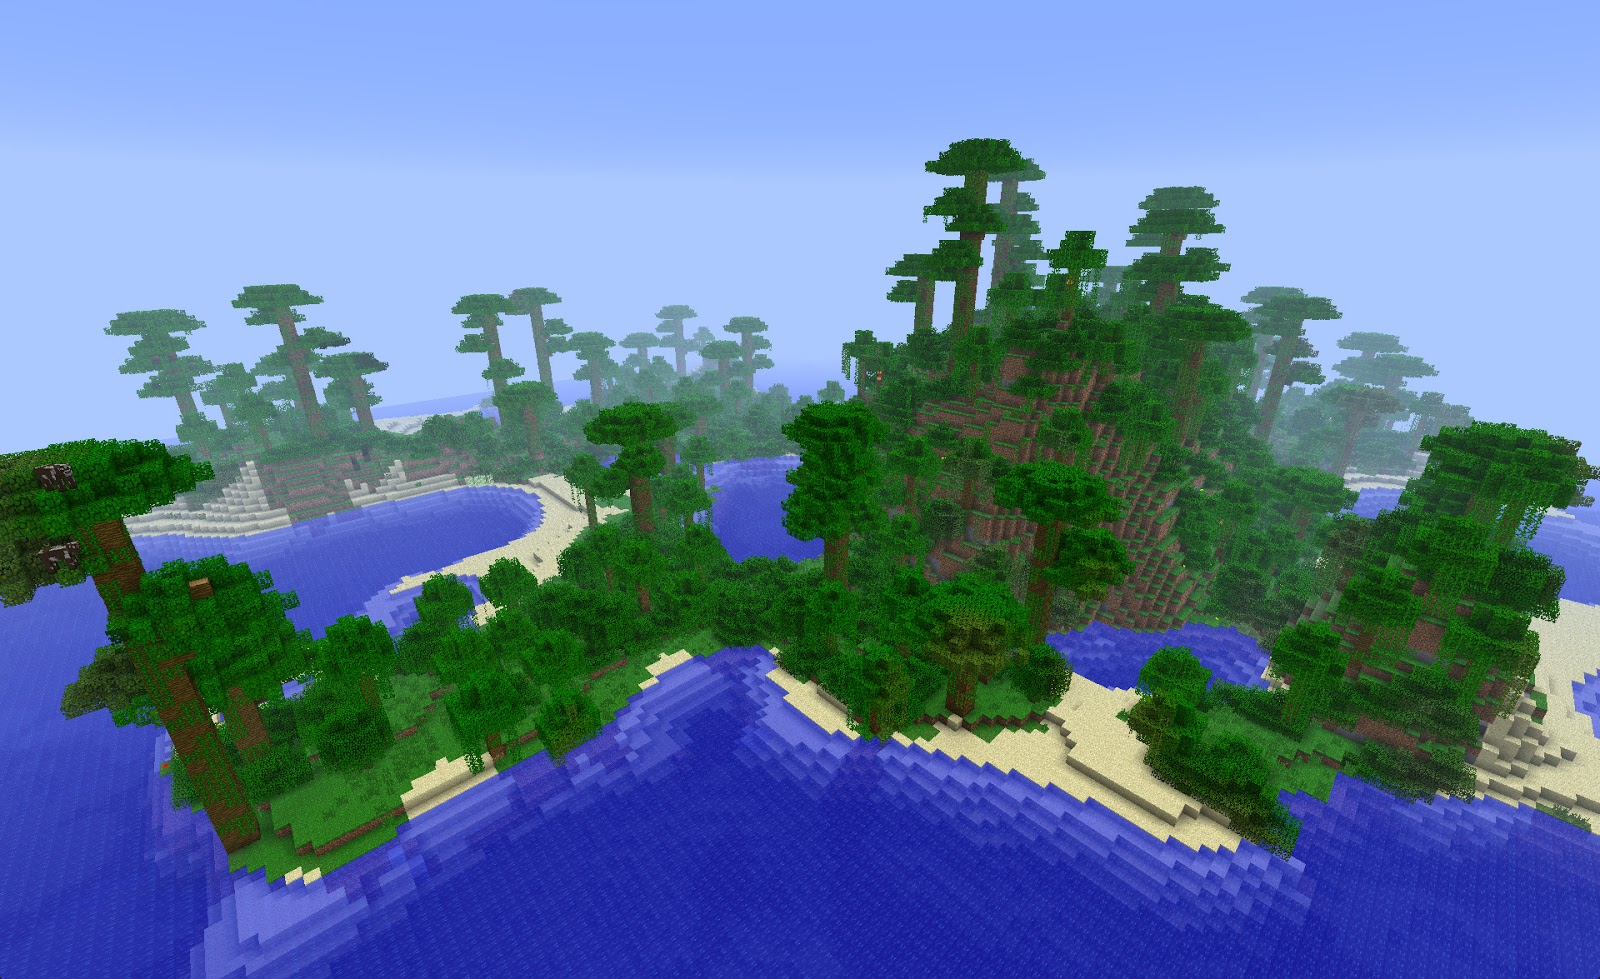 Worldgenerator minecraft seeds sharing the best minecraft seeds friday 4 january 2013 gumiabroncs Image collections